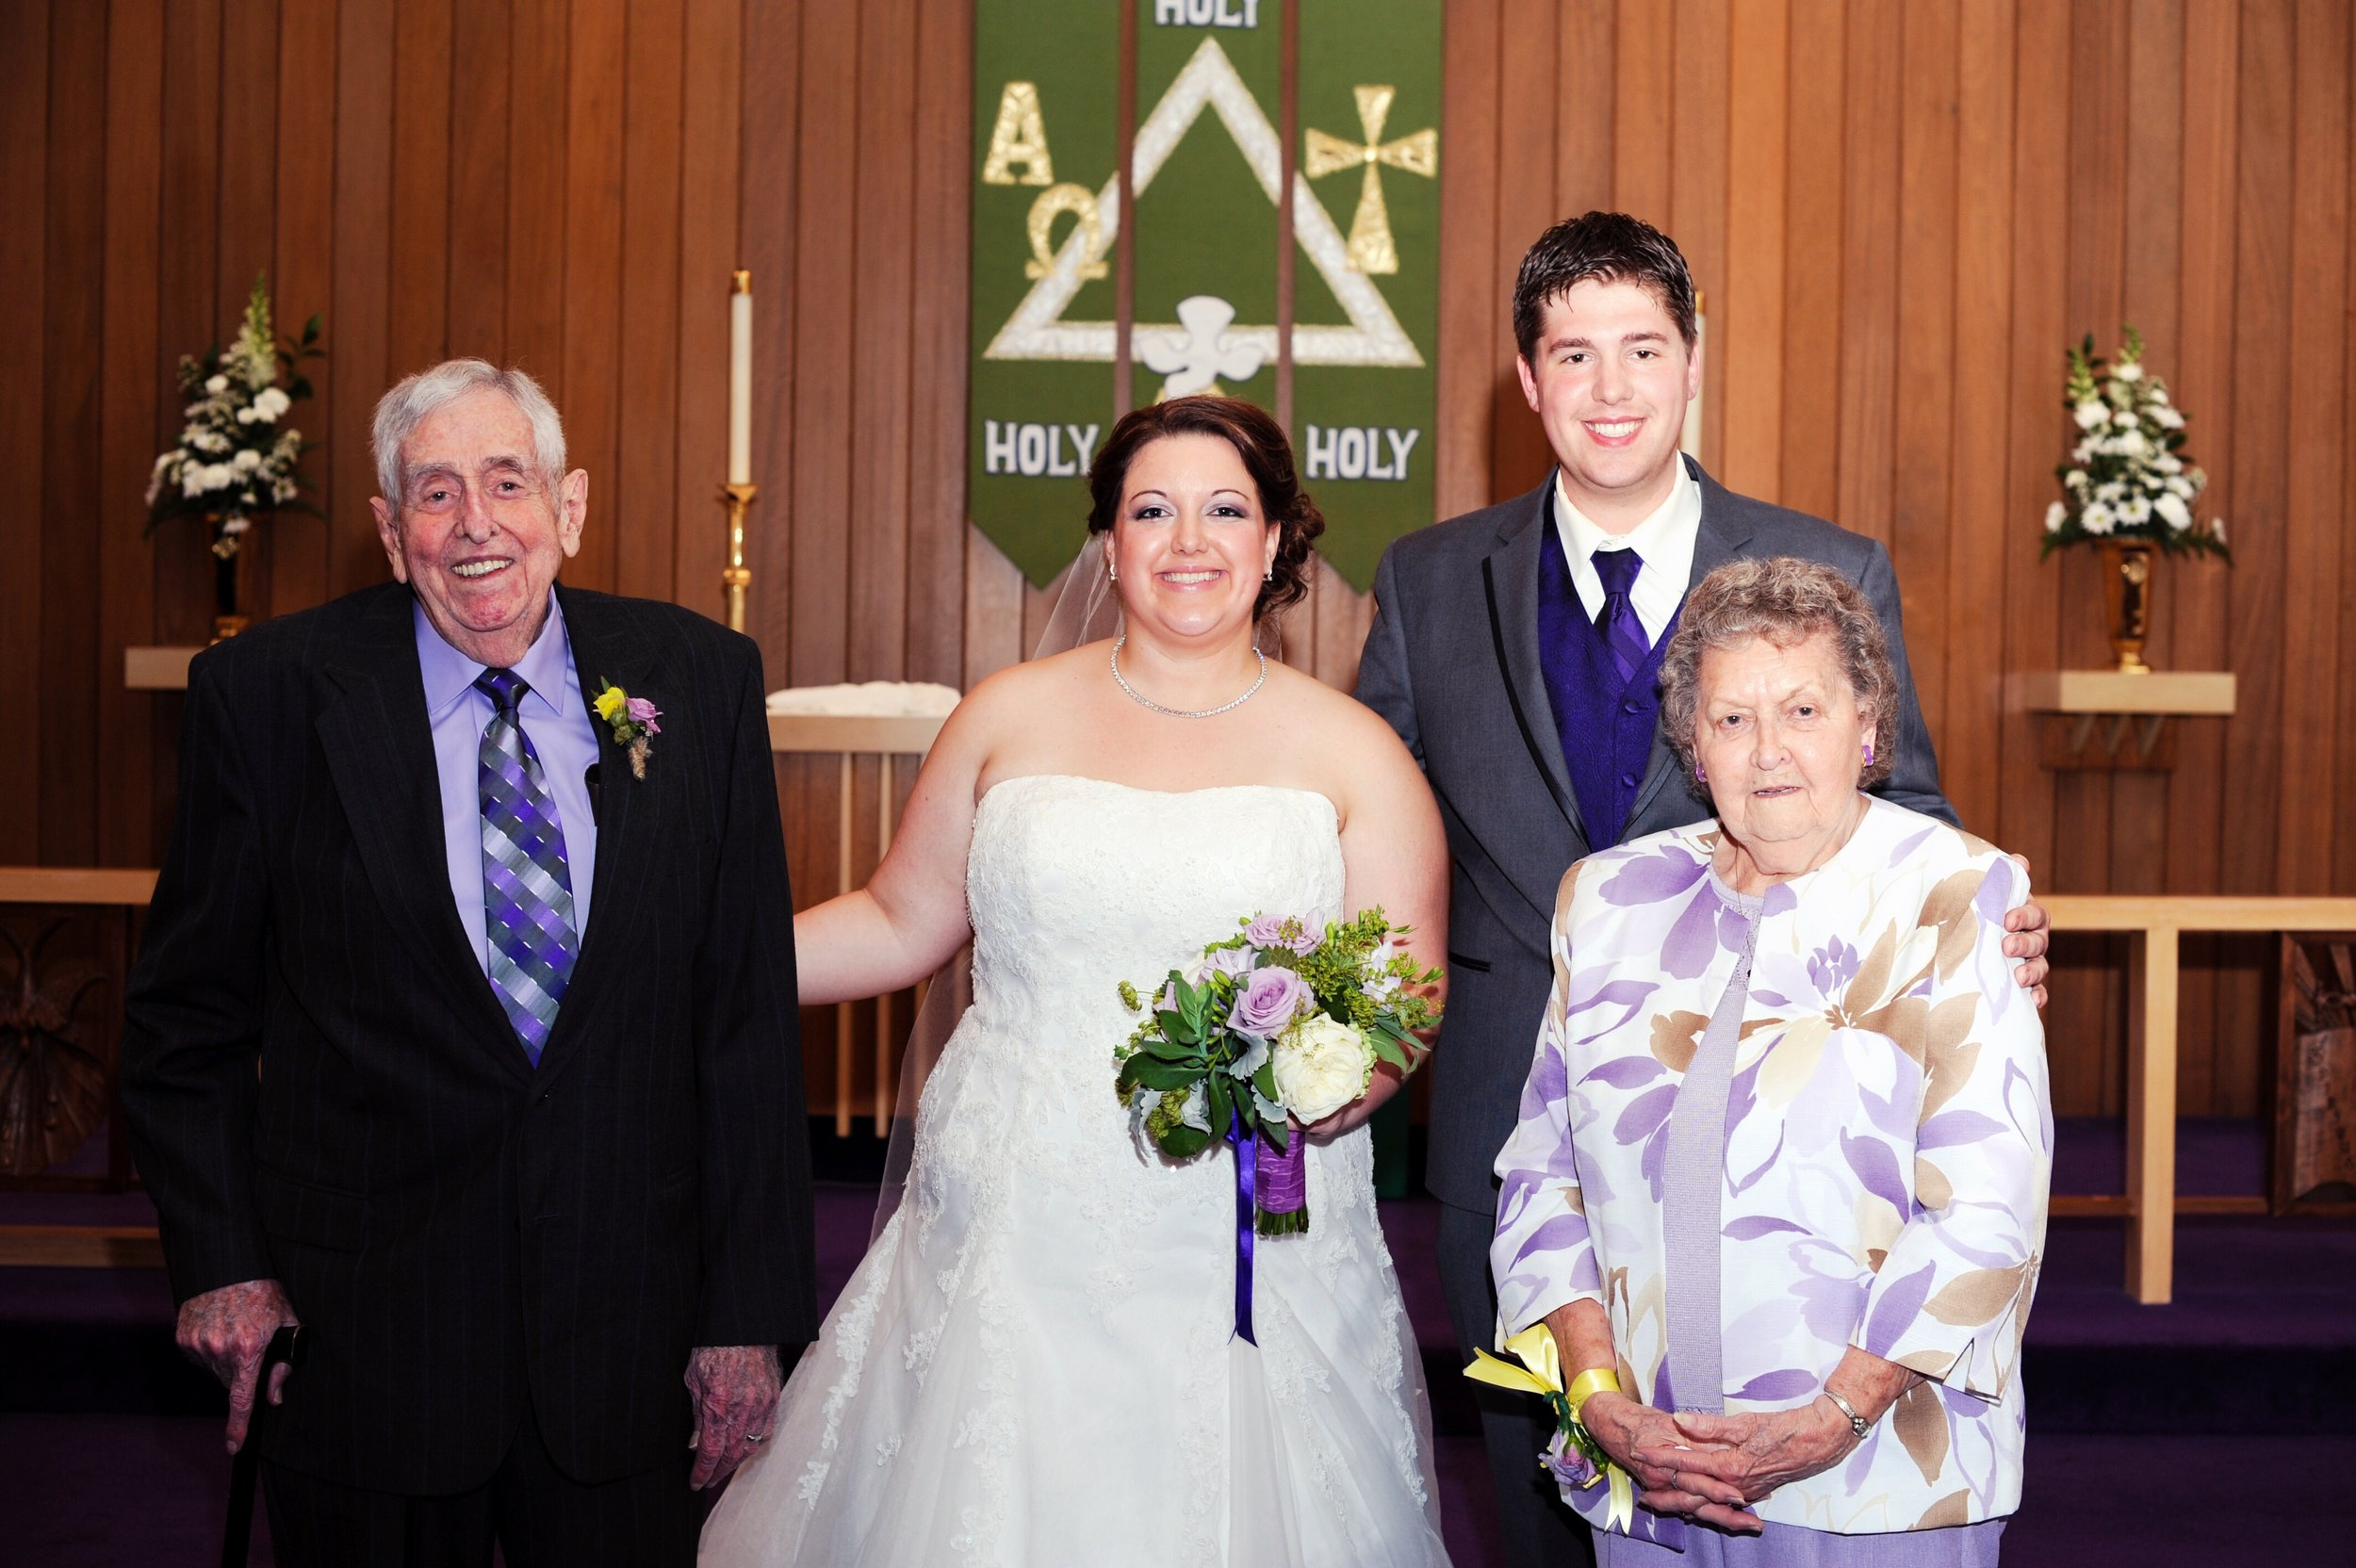 Grandpa wedding.jpg